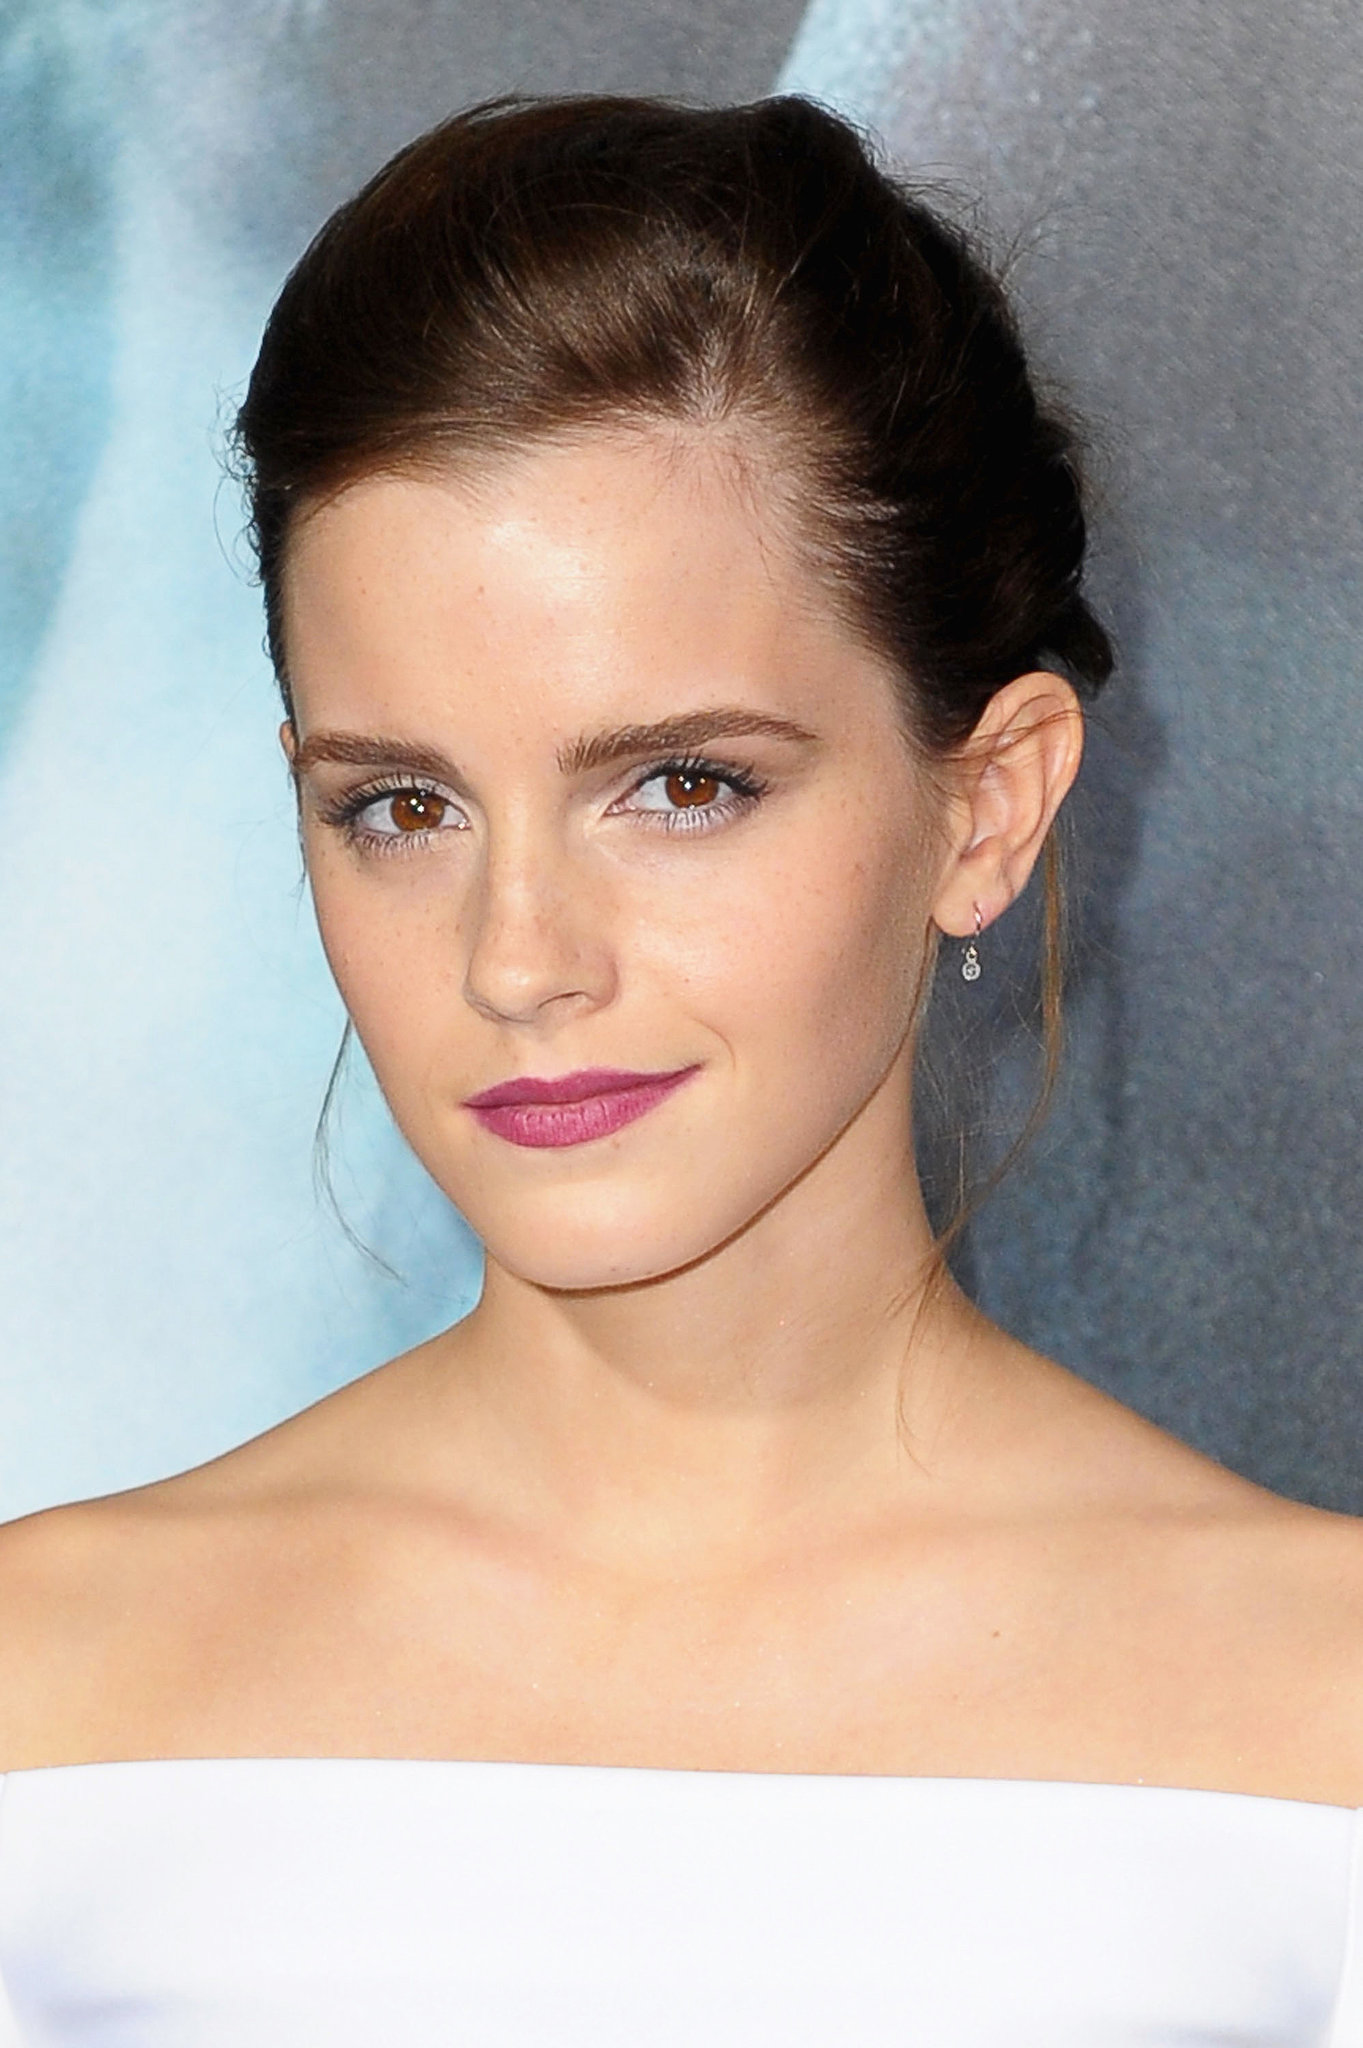 Emma Watson put her berry lips on full display with this updo.